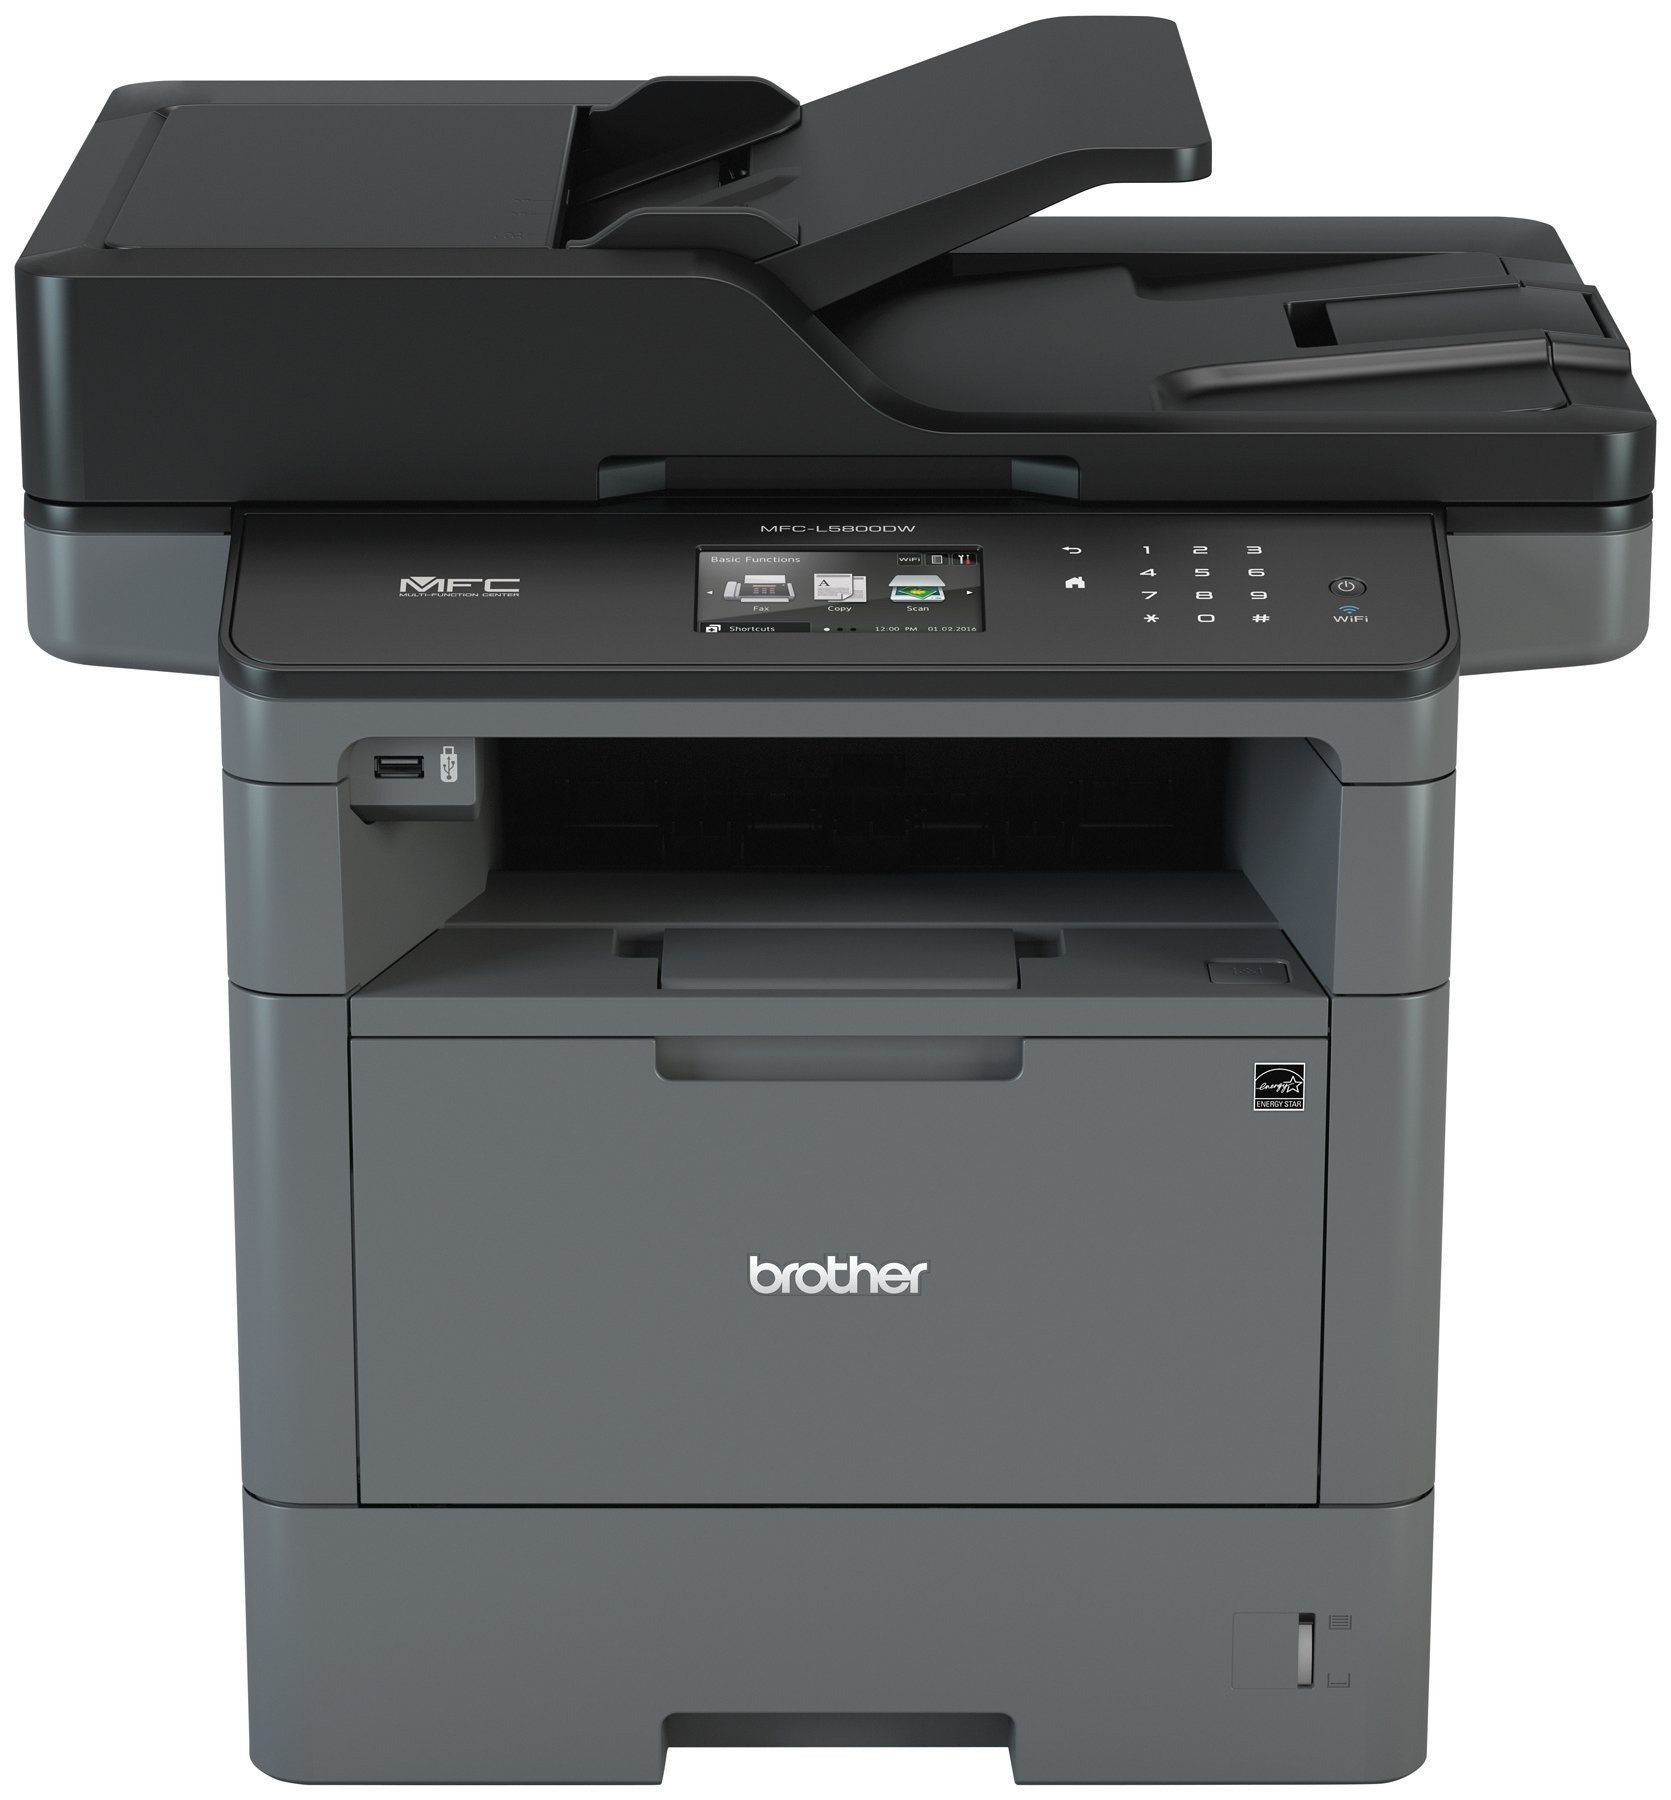 Brother MFCL5800DW Business Laser All-in-One with Duplex Printing and Wireless Networking, Amazon Dash Replenishment Enabled by Brother